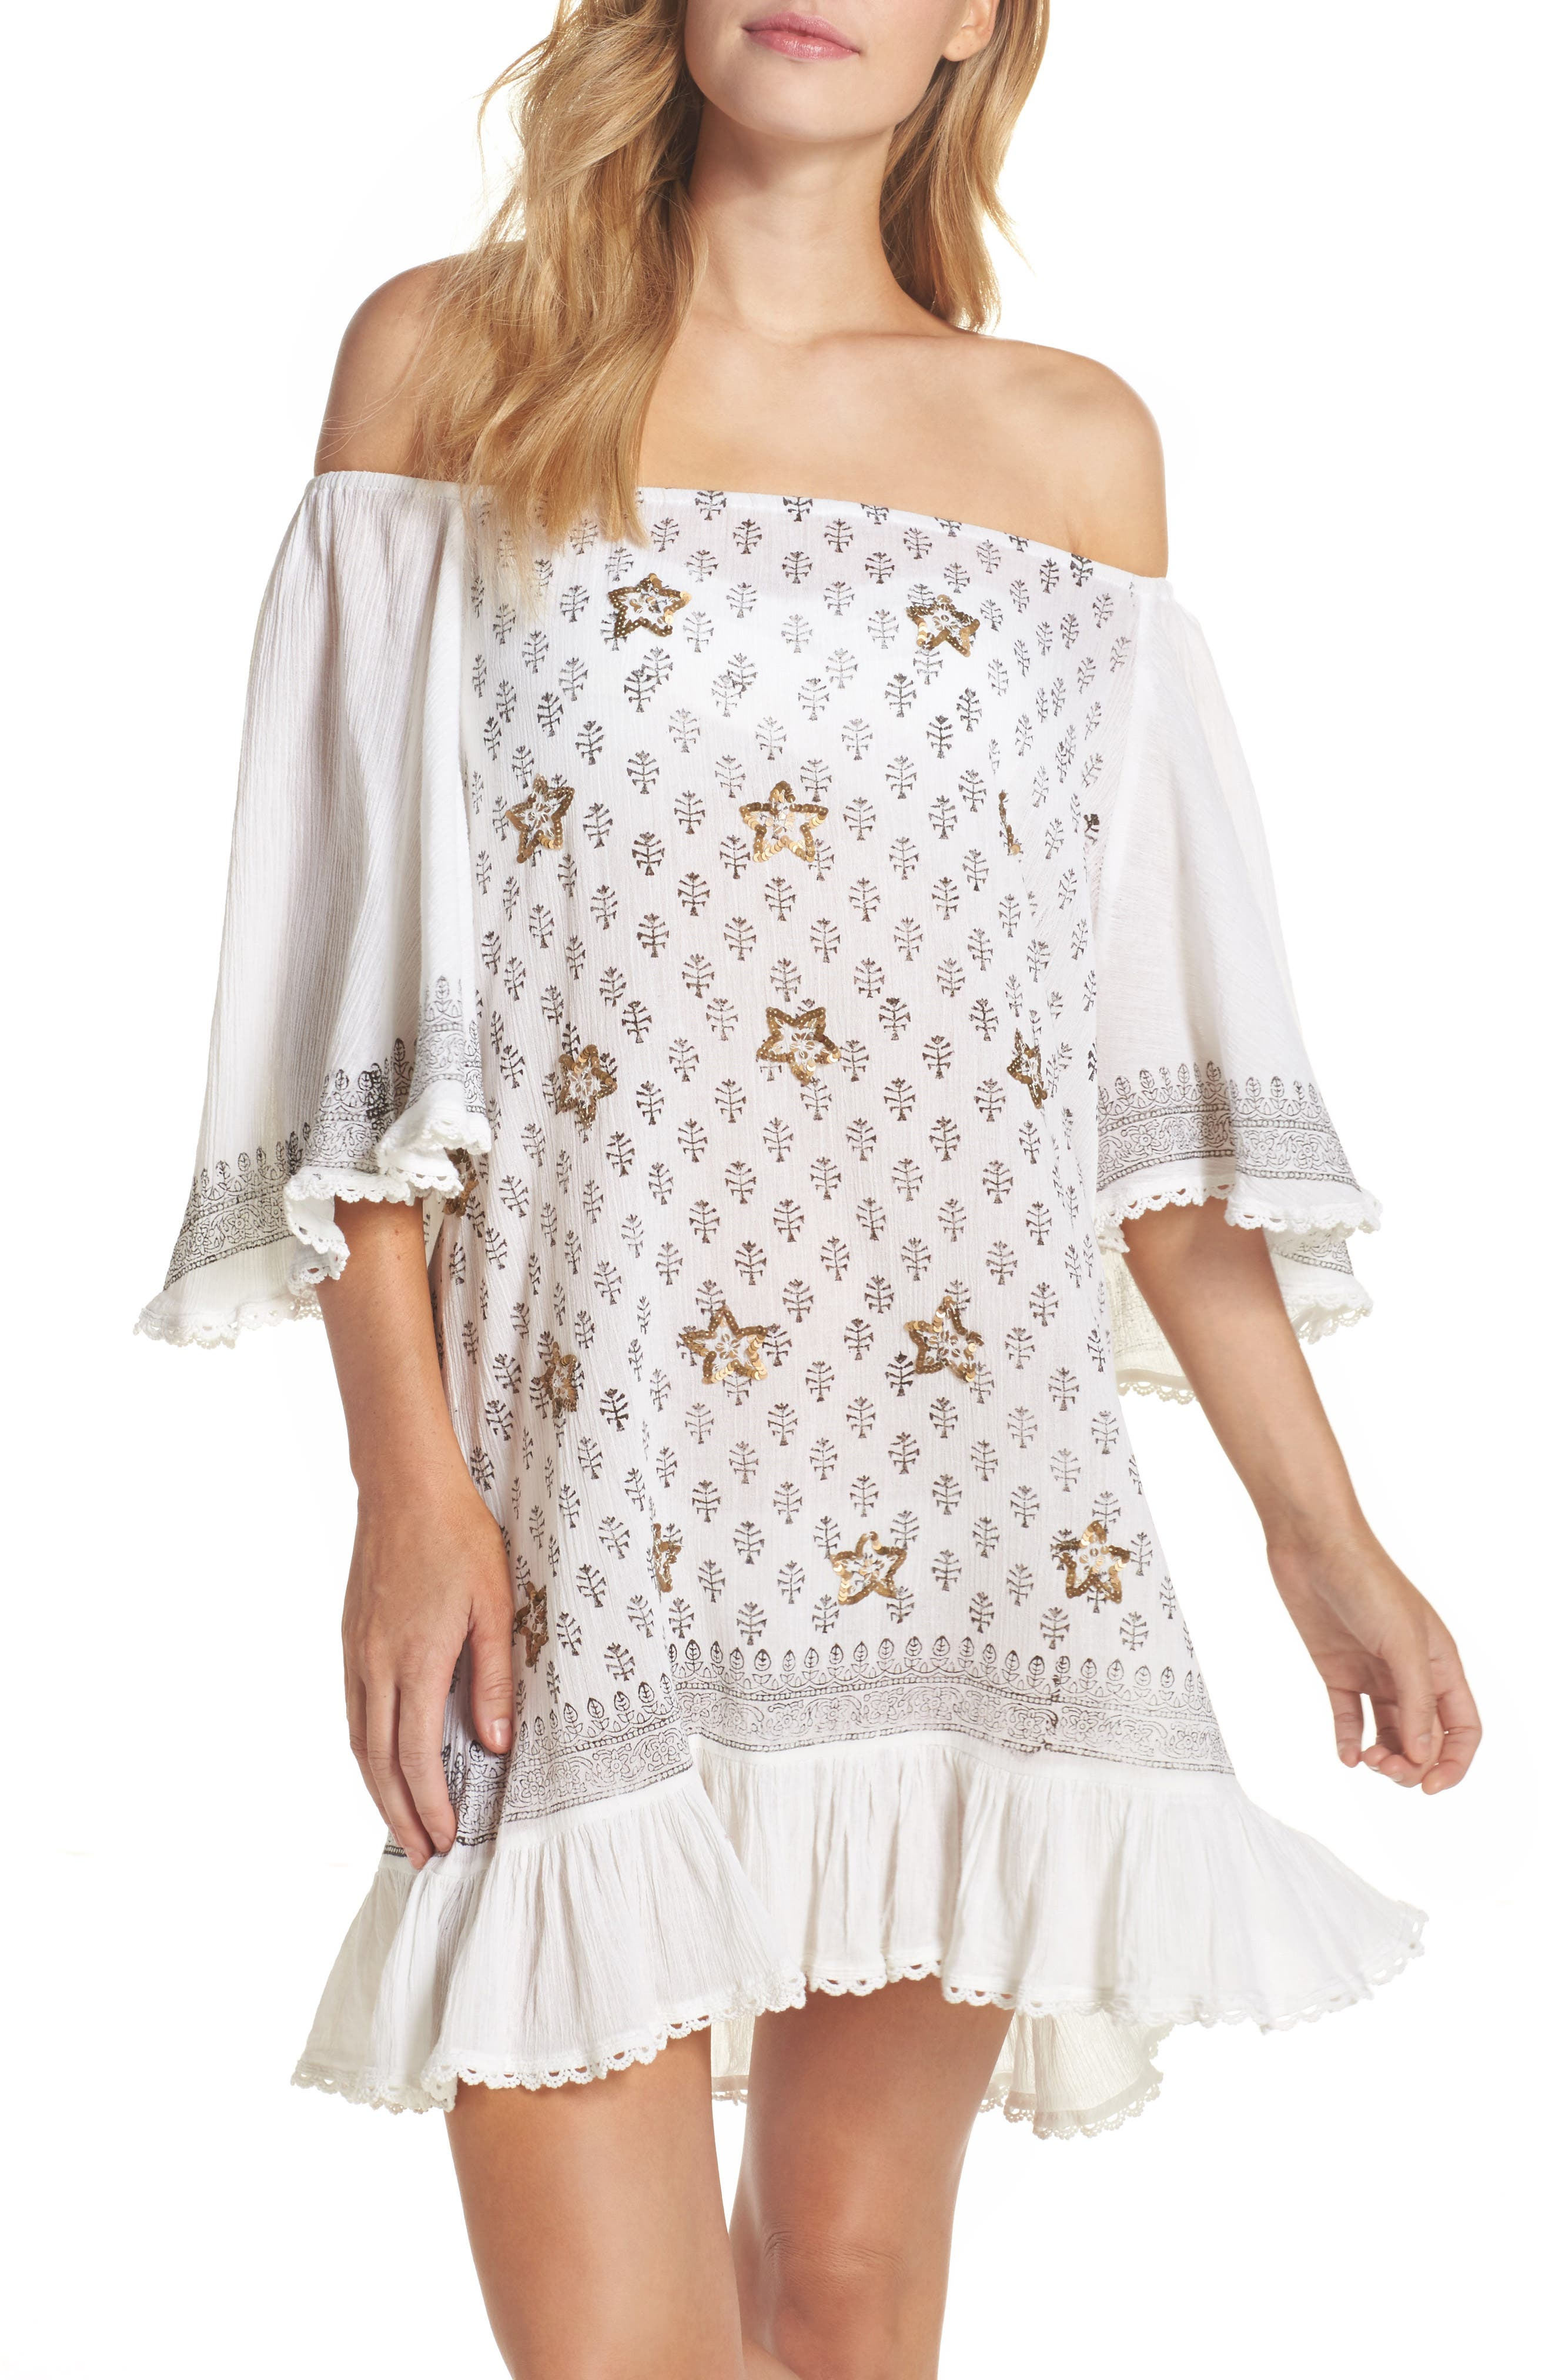 Dreamer Off the Shoulder Cover-Up Dress,                             Main thumbnail 1, color,                             White